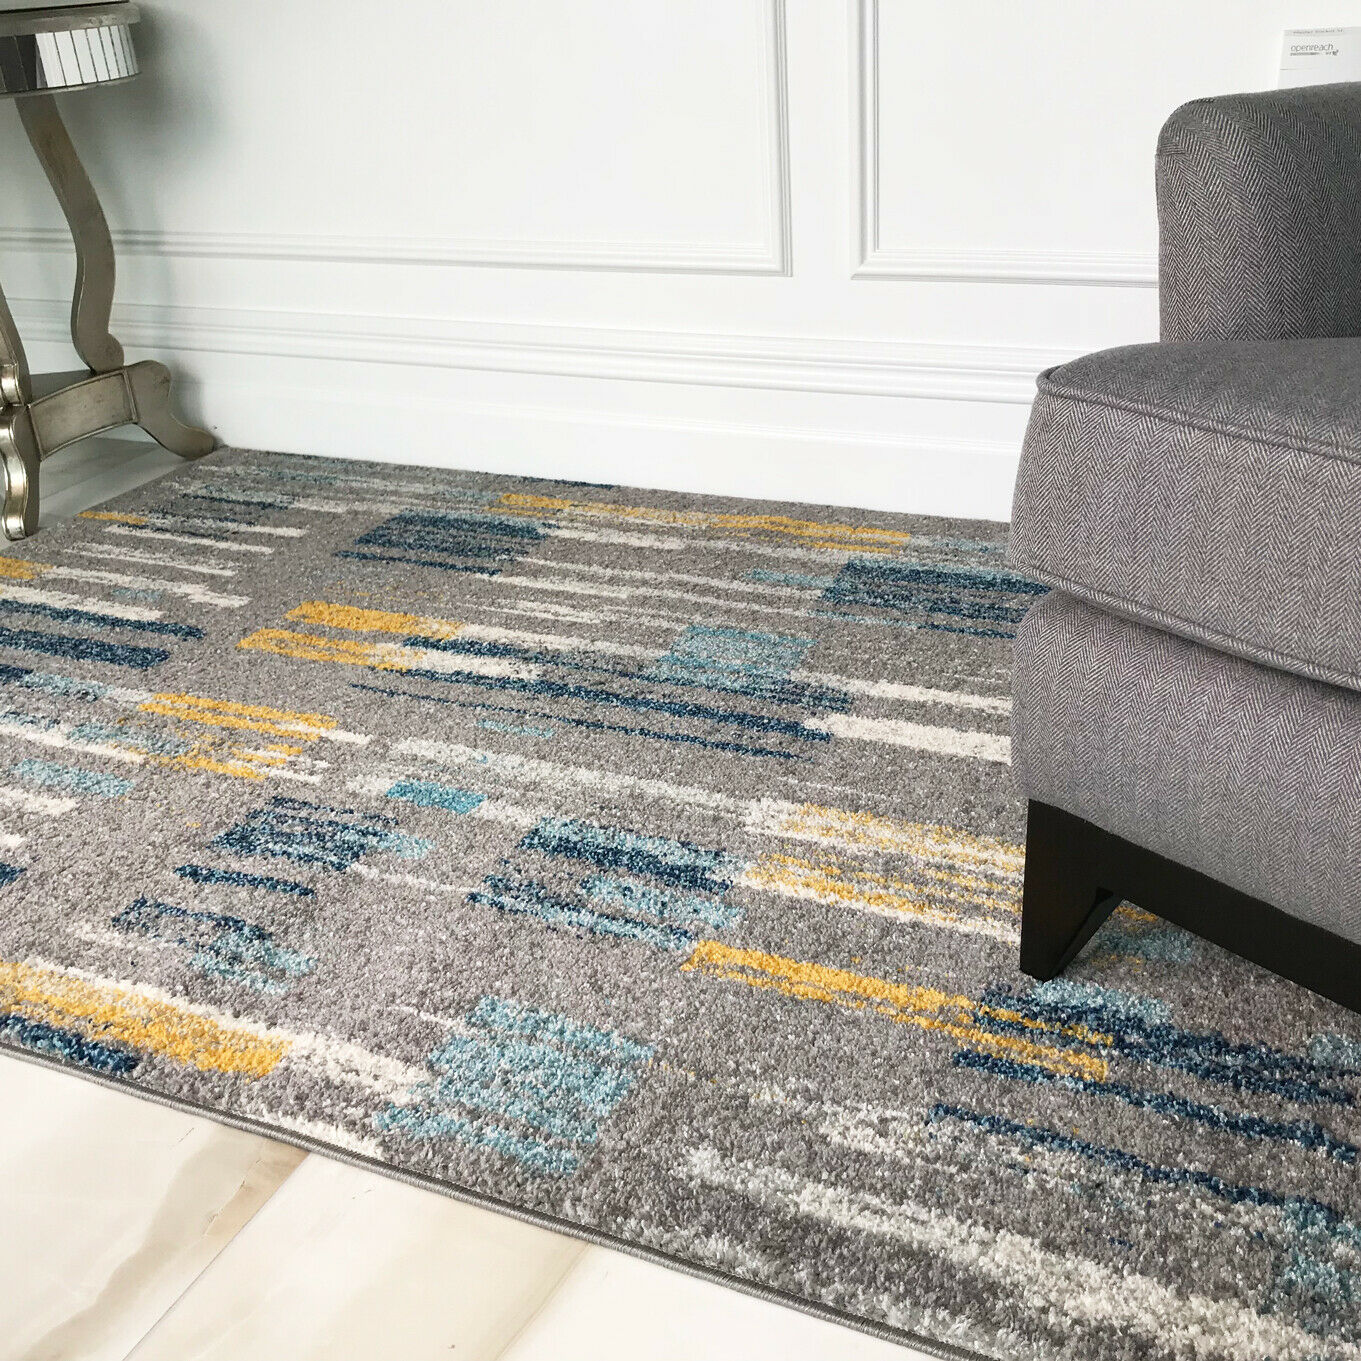 The living room is one of the most important areas in your house for a great hosting experience. Modern Geometric Living Room Rugs & Long Hallway Runners ...